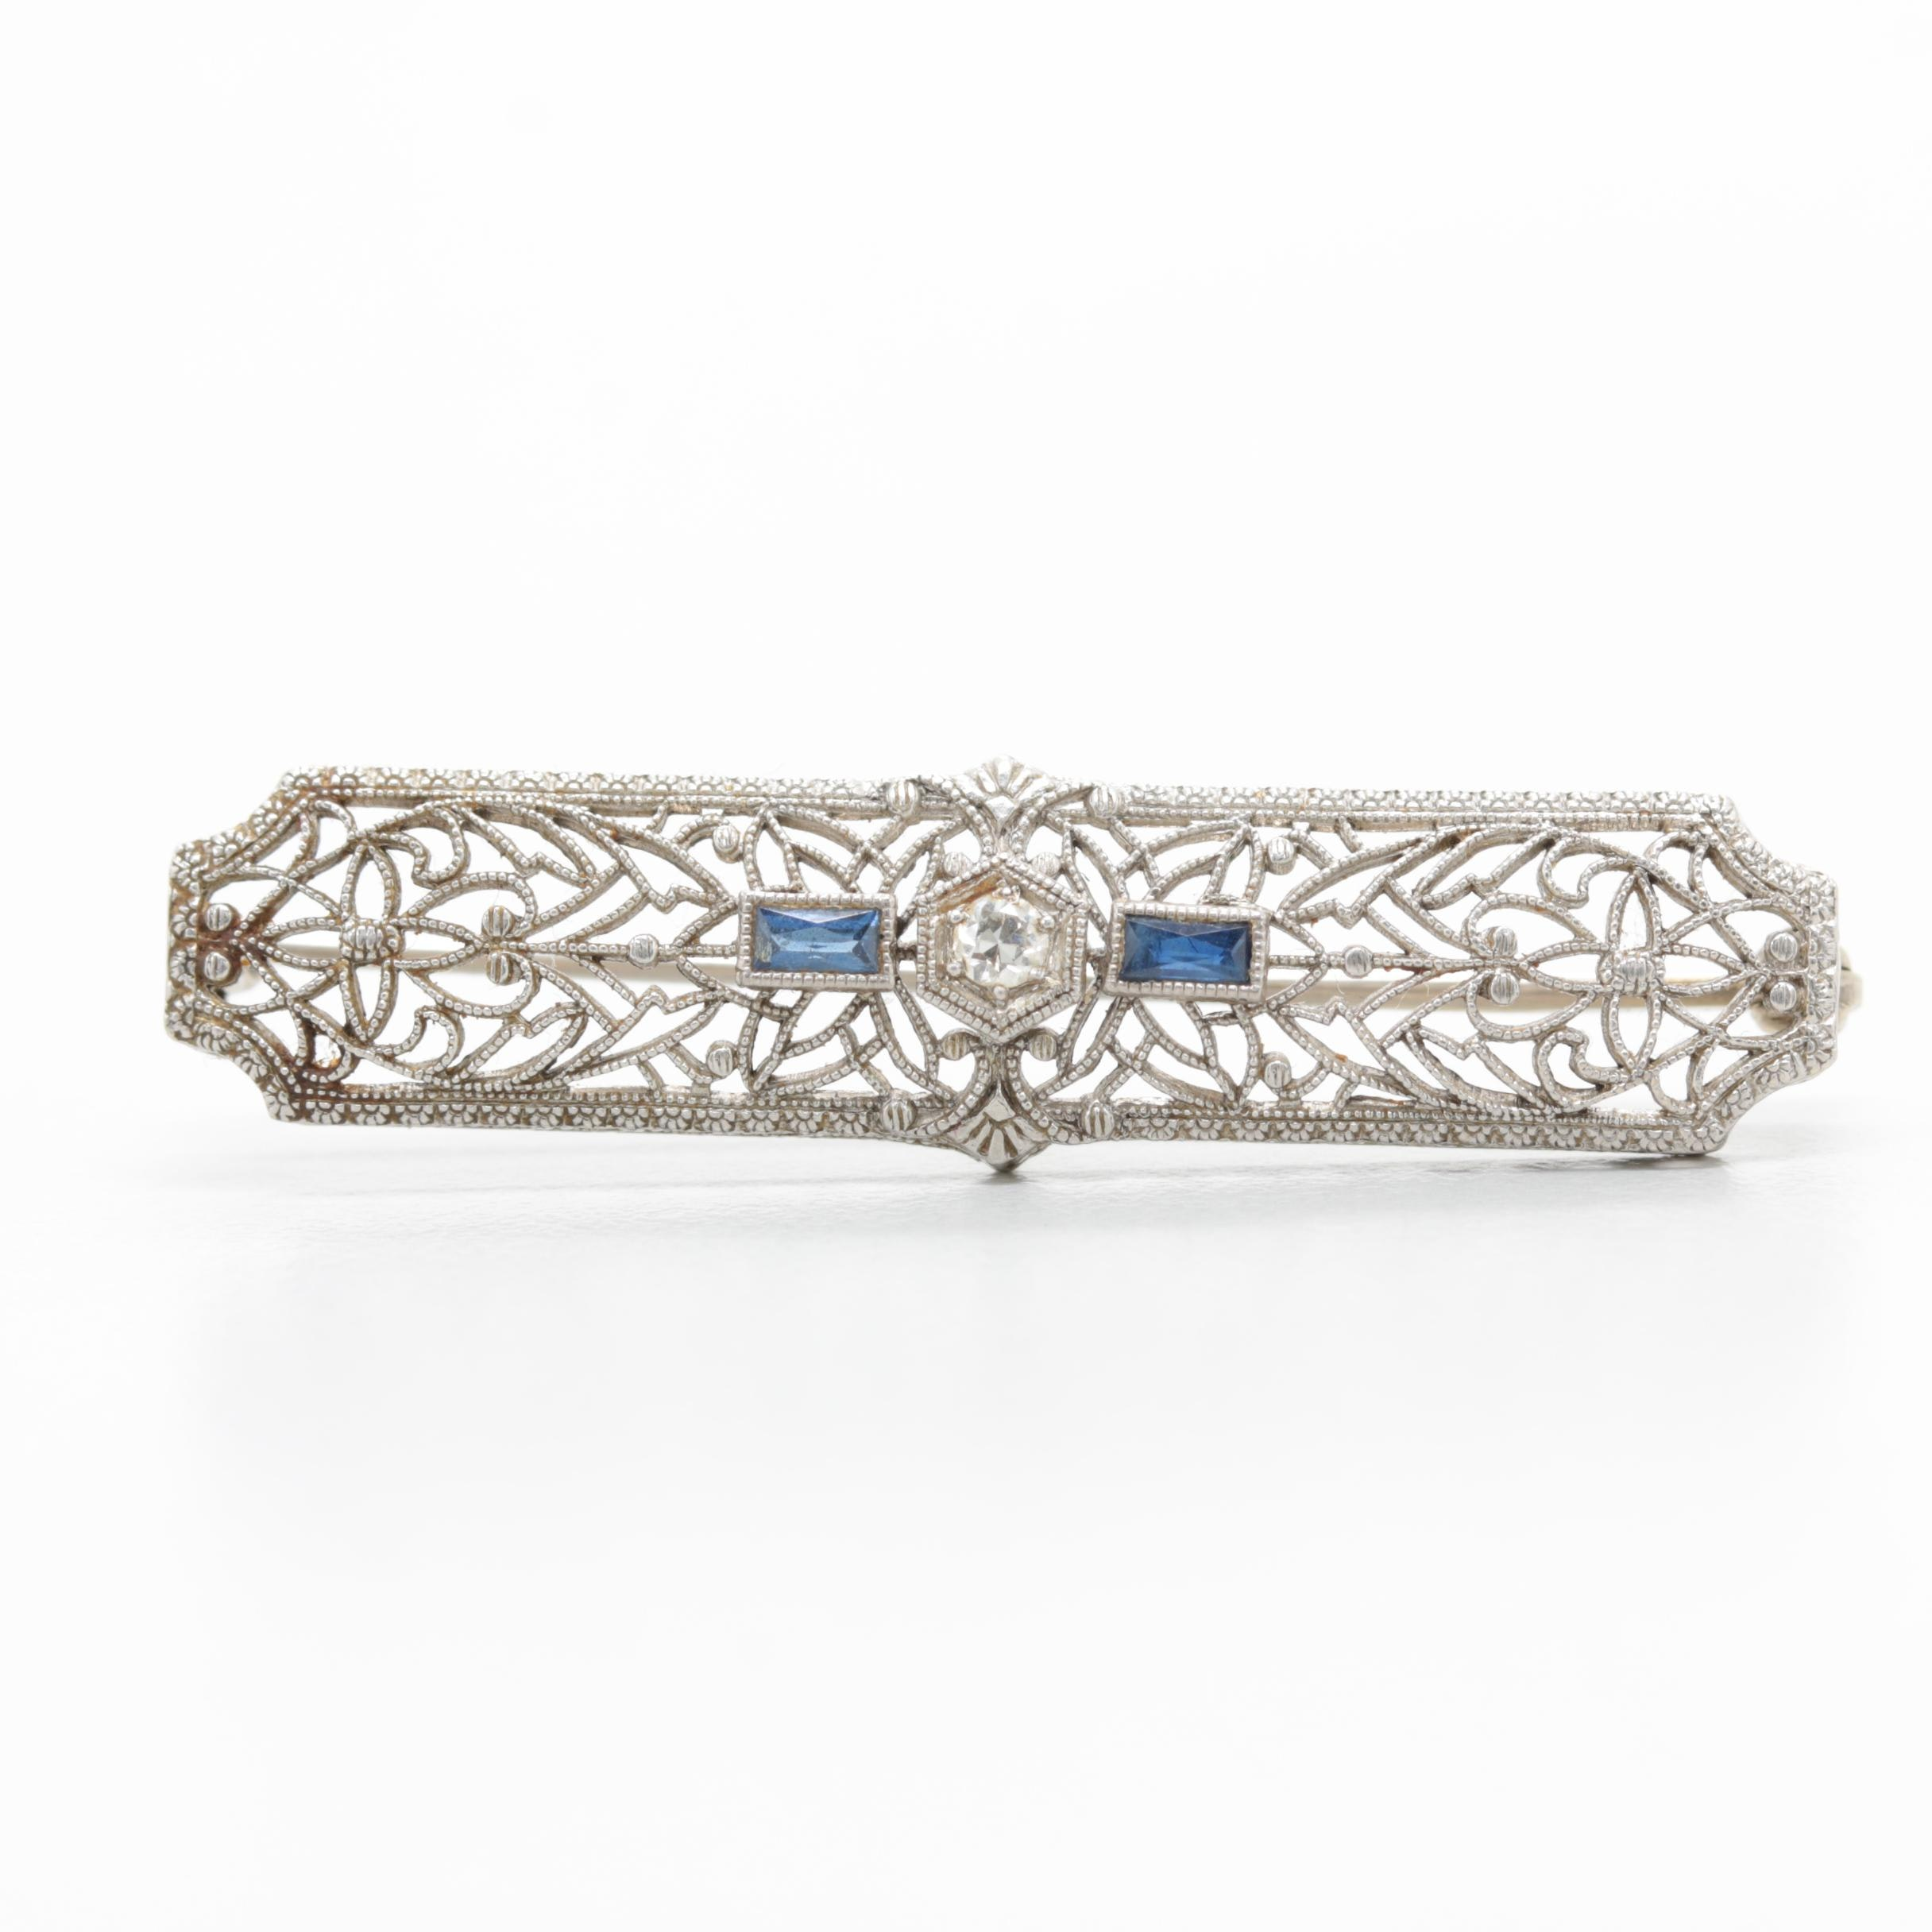 Art Deco 14K White Gold and Platinum Diamond and Synthetic Sapphire Brooch